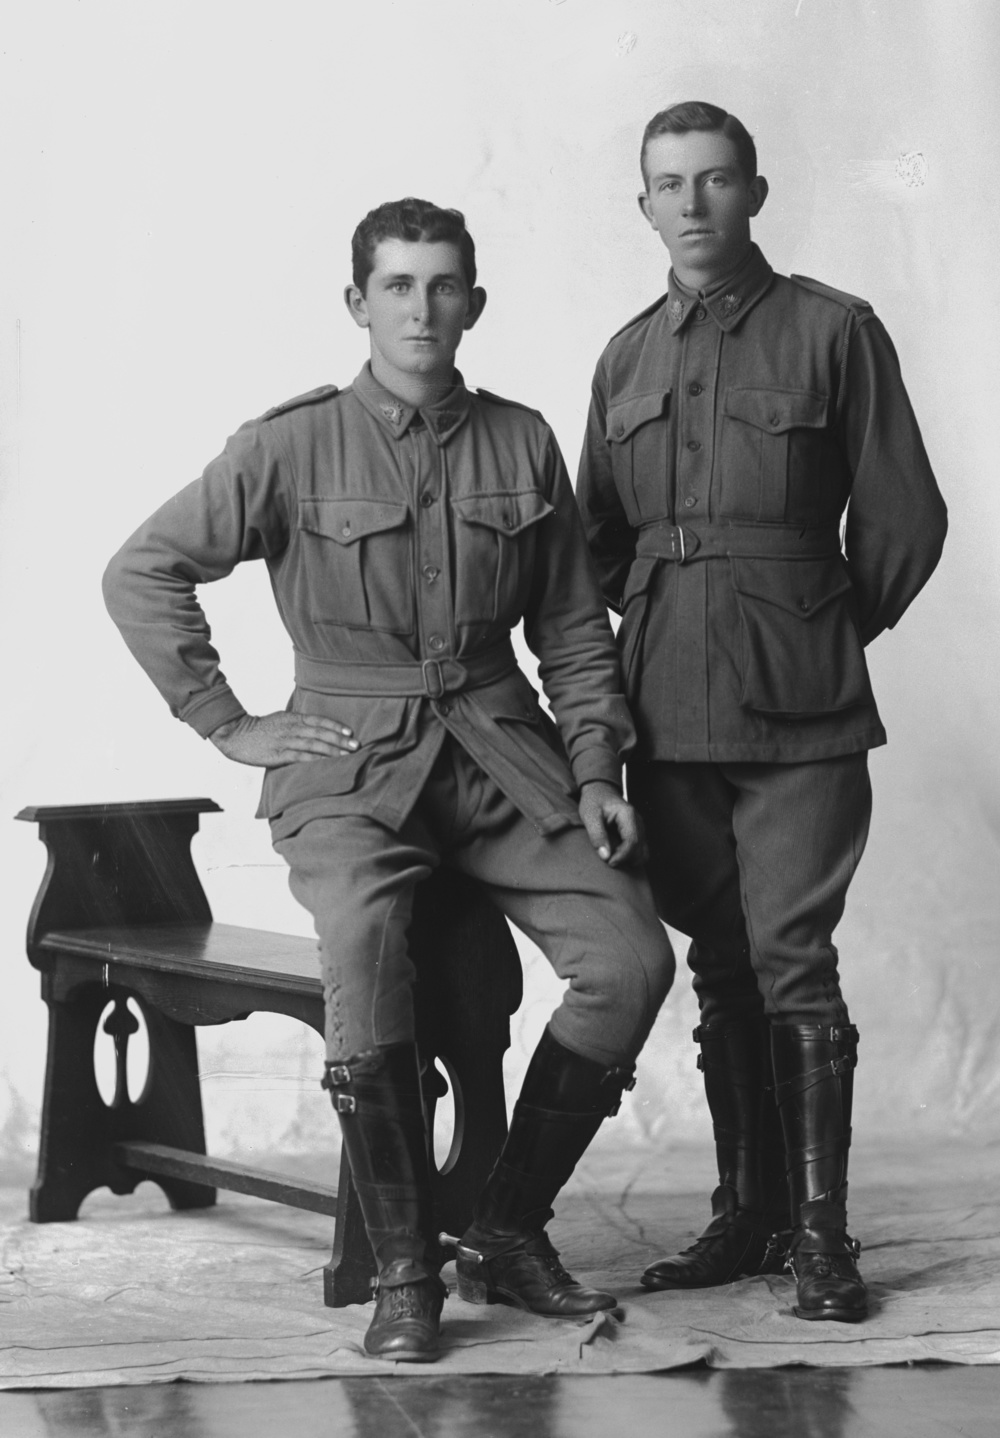 Photographed at the Dease Studio, 117 Barrack Street Perth WA Image courtesy of the State Library of Western Australia: 108243PD